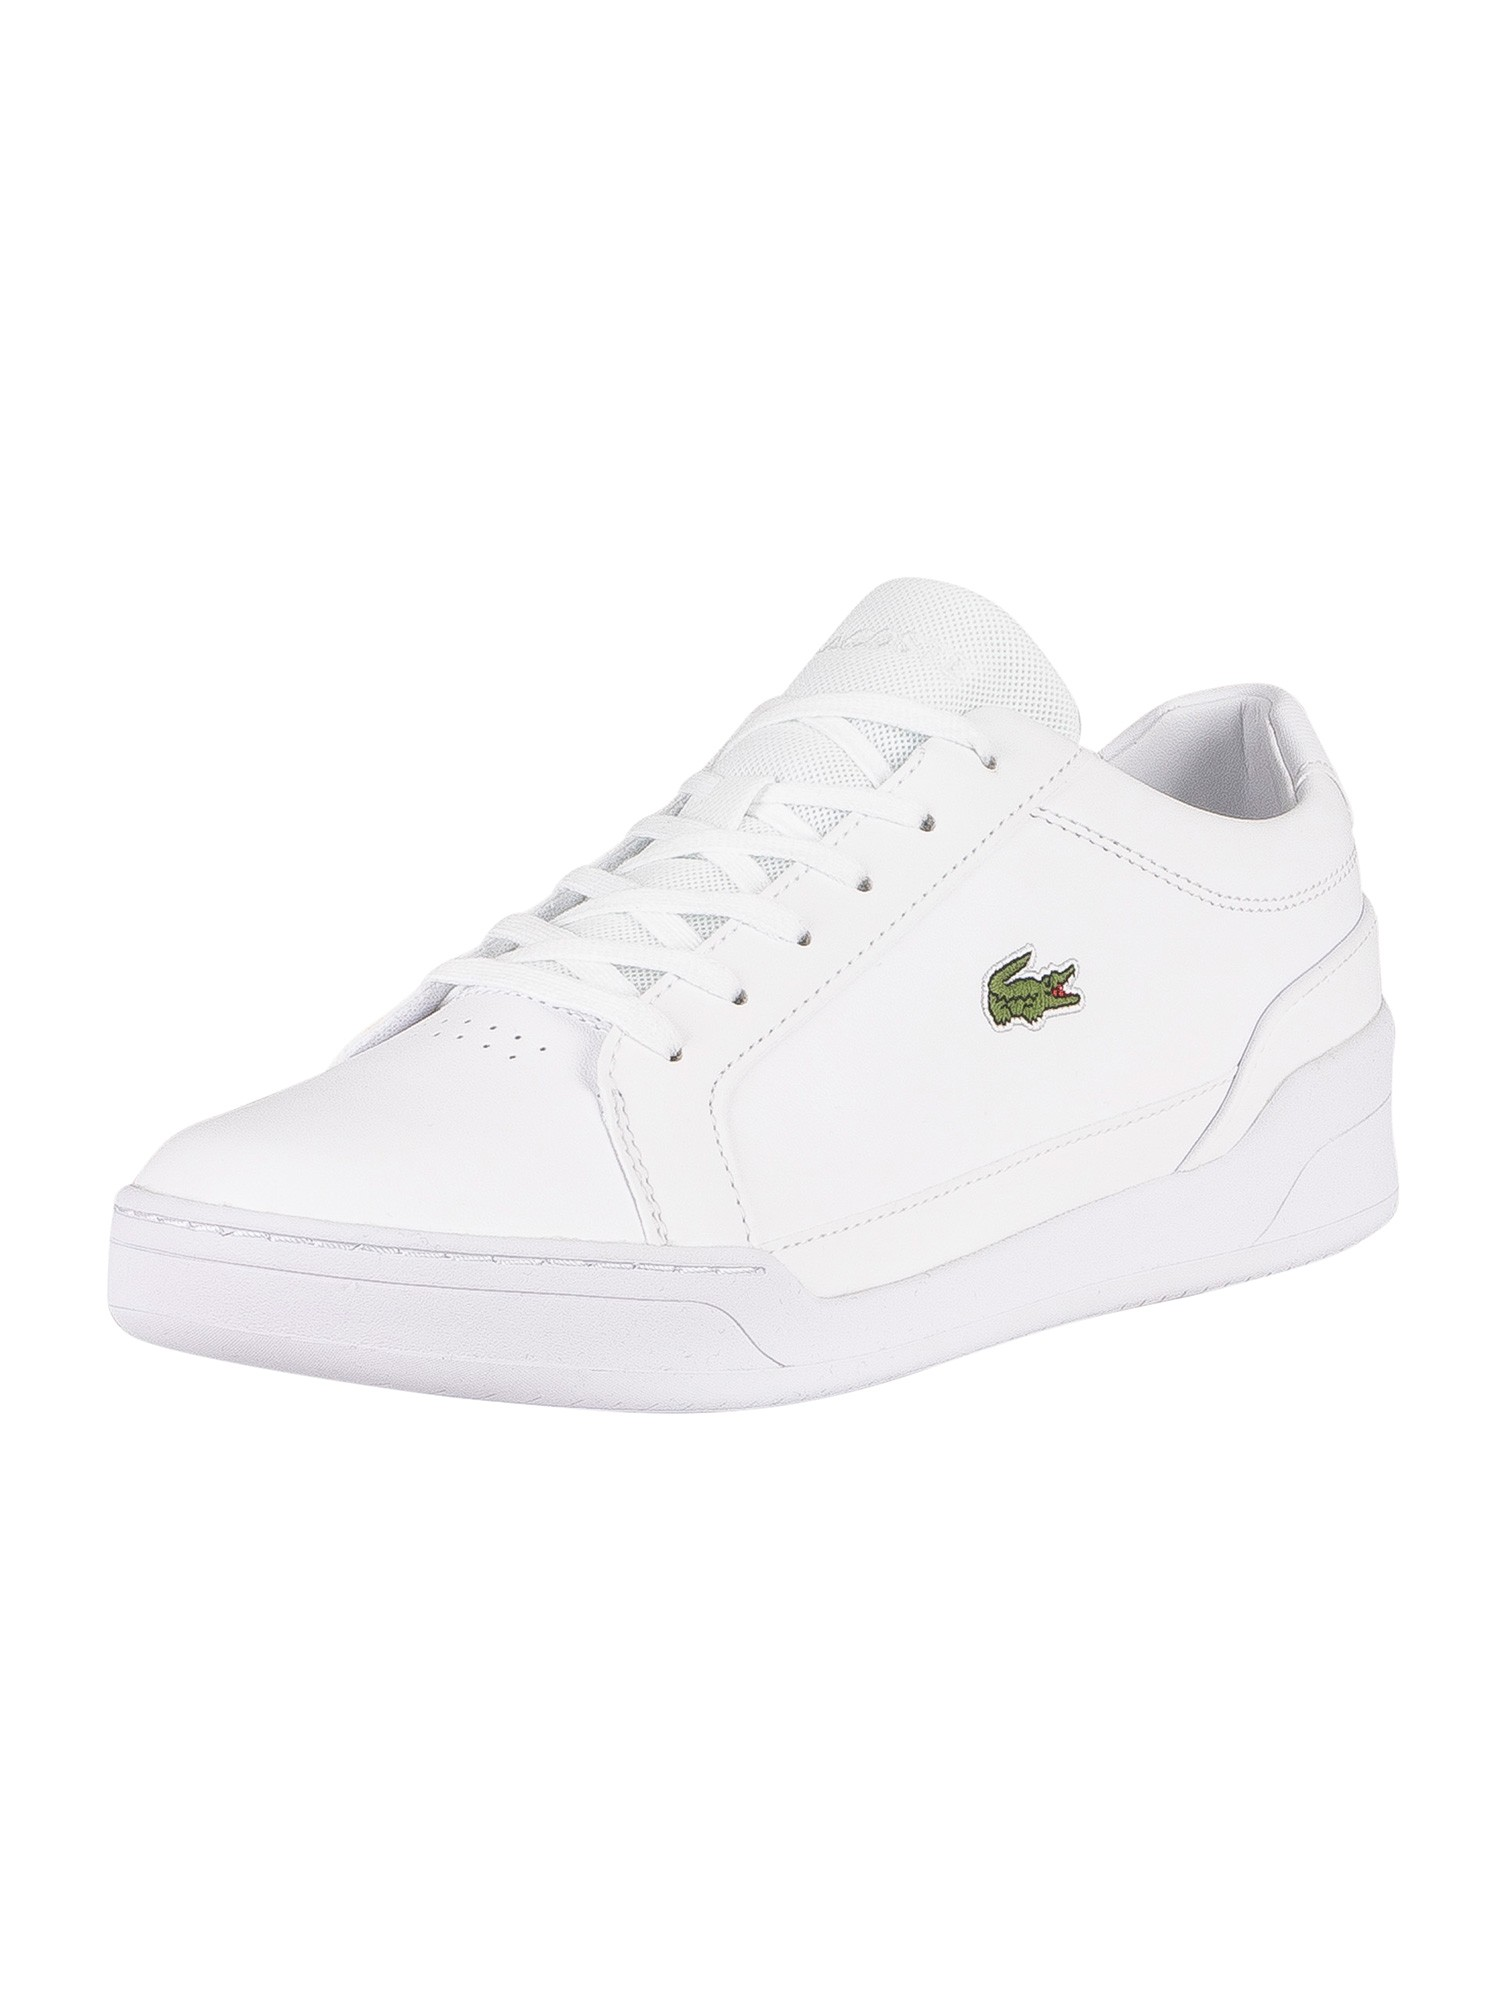 Lacoste Challenge 0120 2 SMA Leather